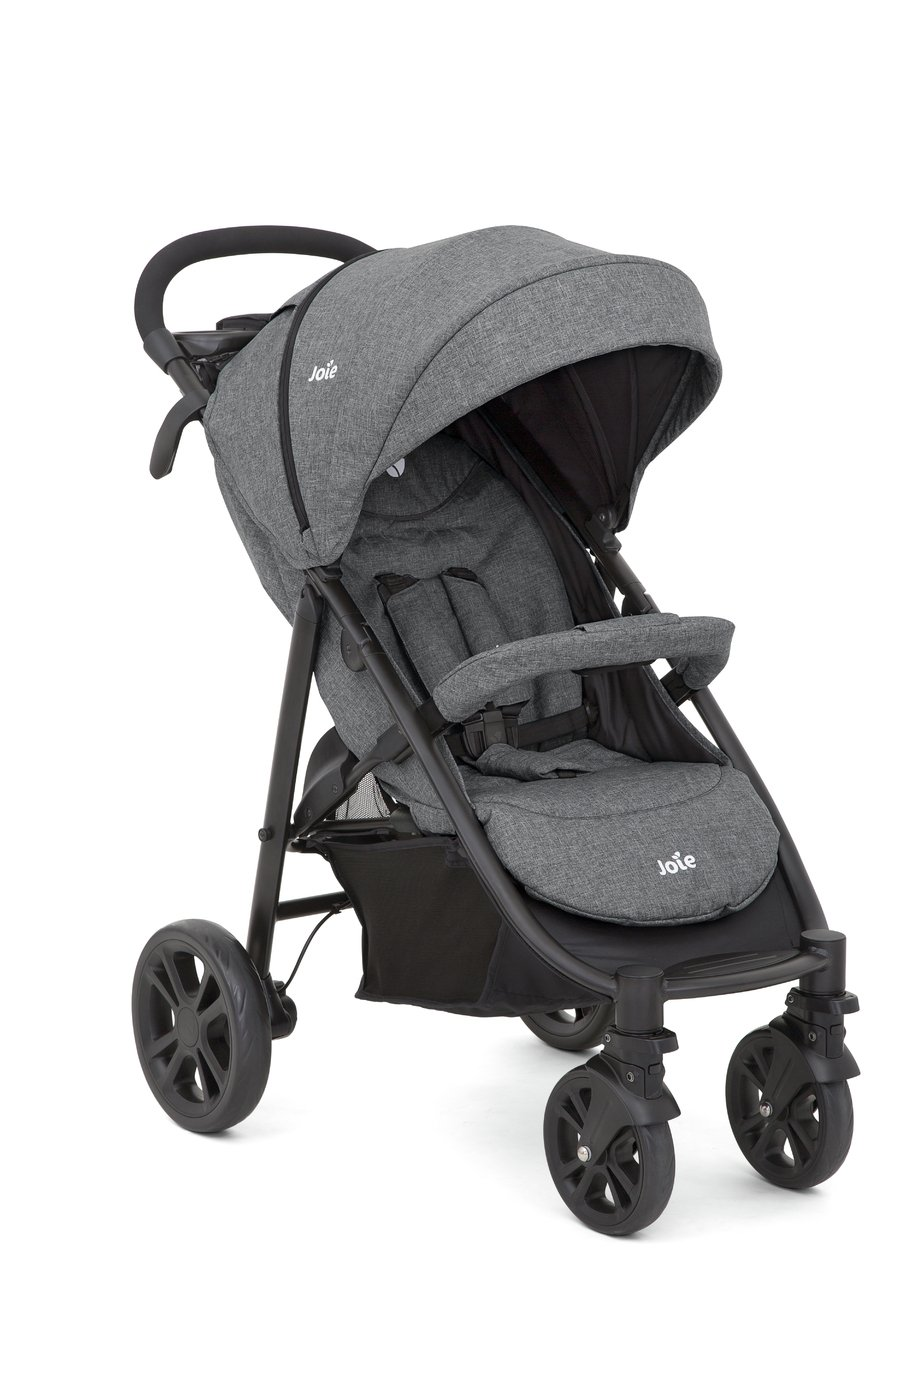 sale on joie litetrax 4 wheel stroller chromium joie now available our best price on joie lite. Black Bedroom Furniture Sets. Home Design Ideas